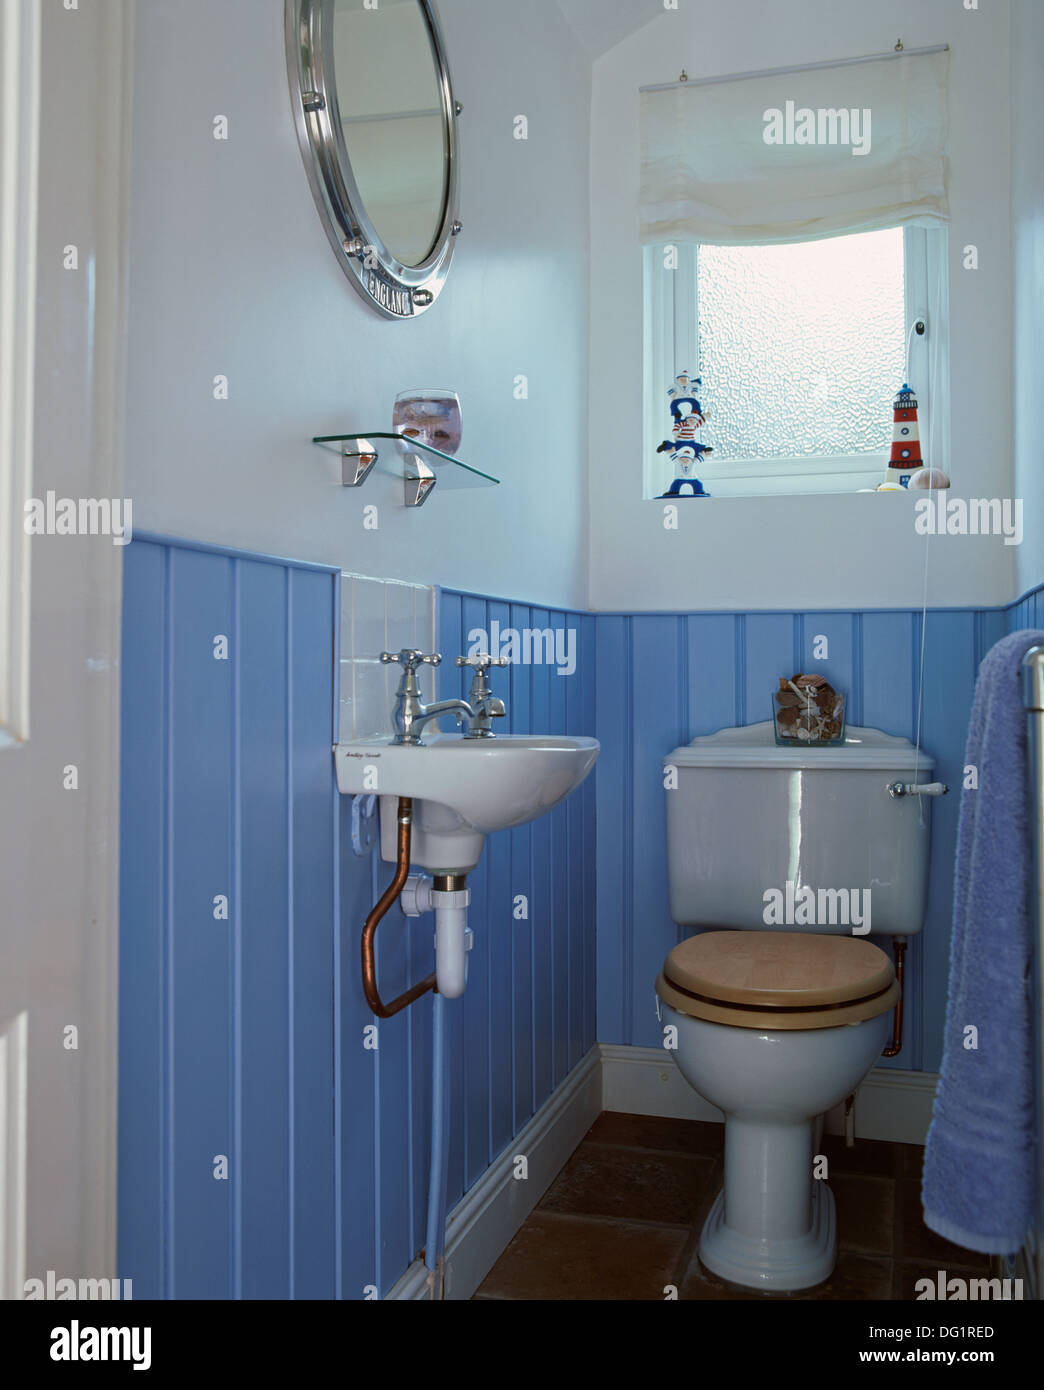 Tongue And Groove Panelling Stock Photos & Tongue And Groove ...